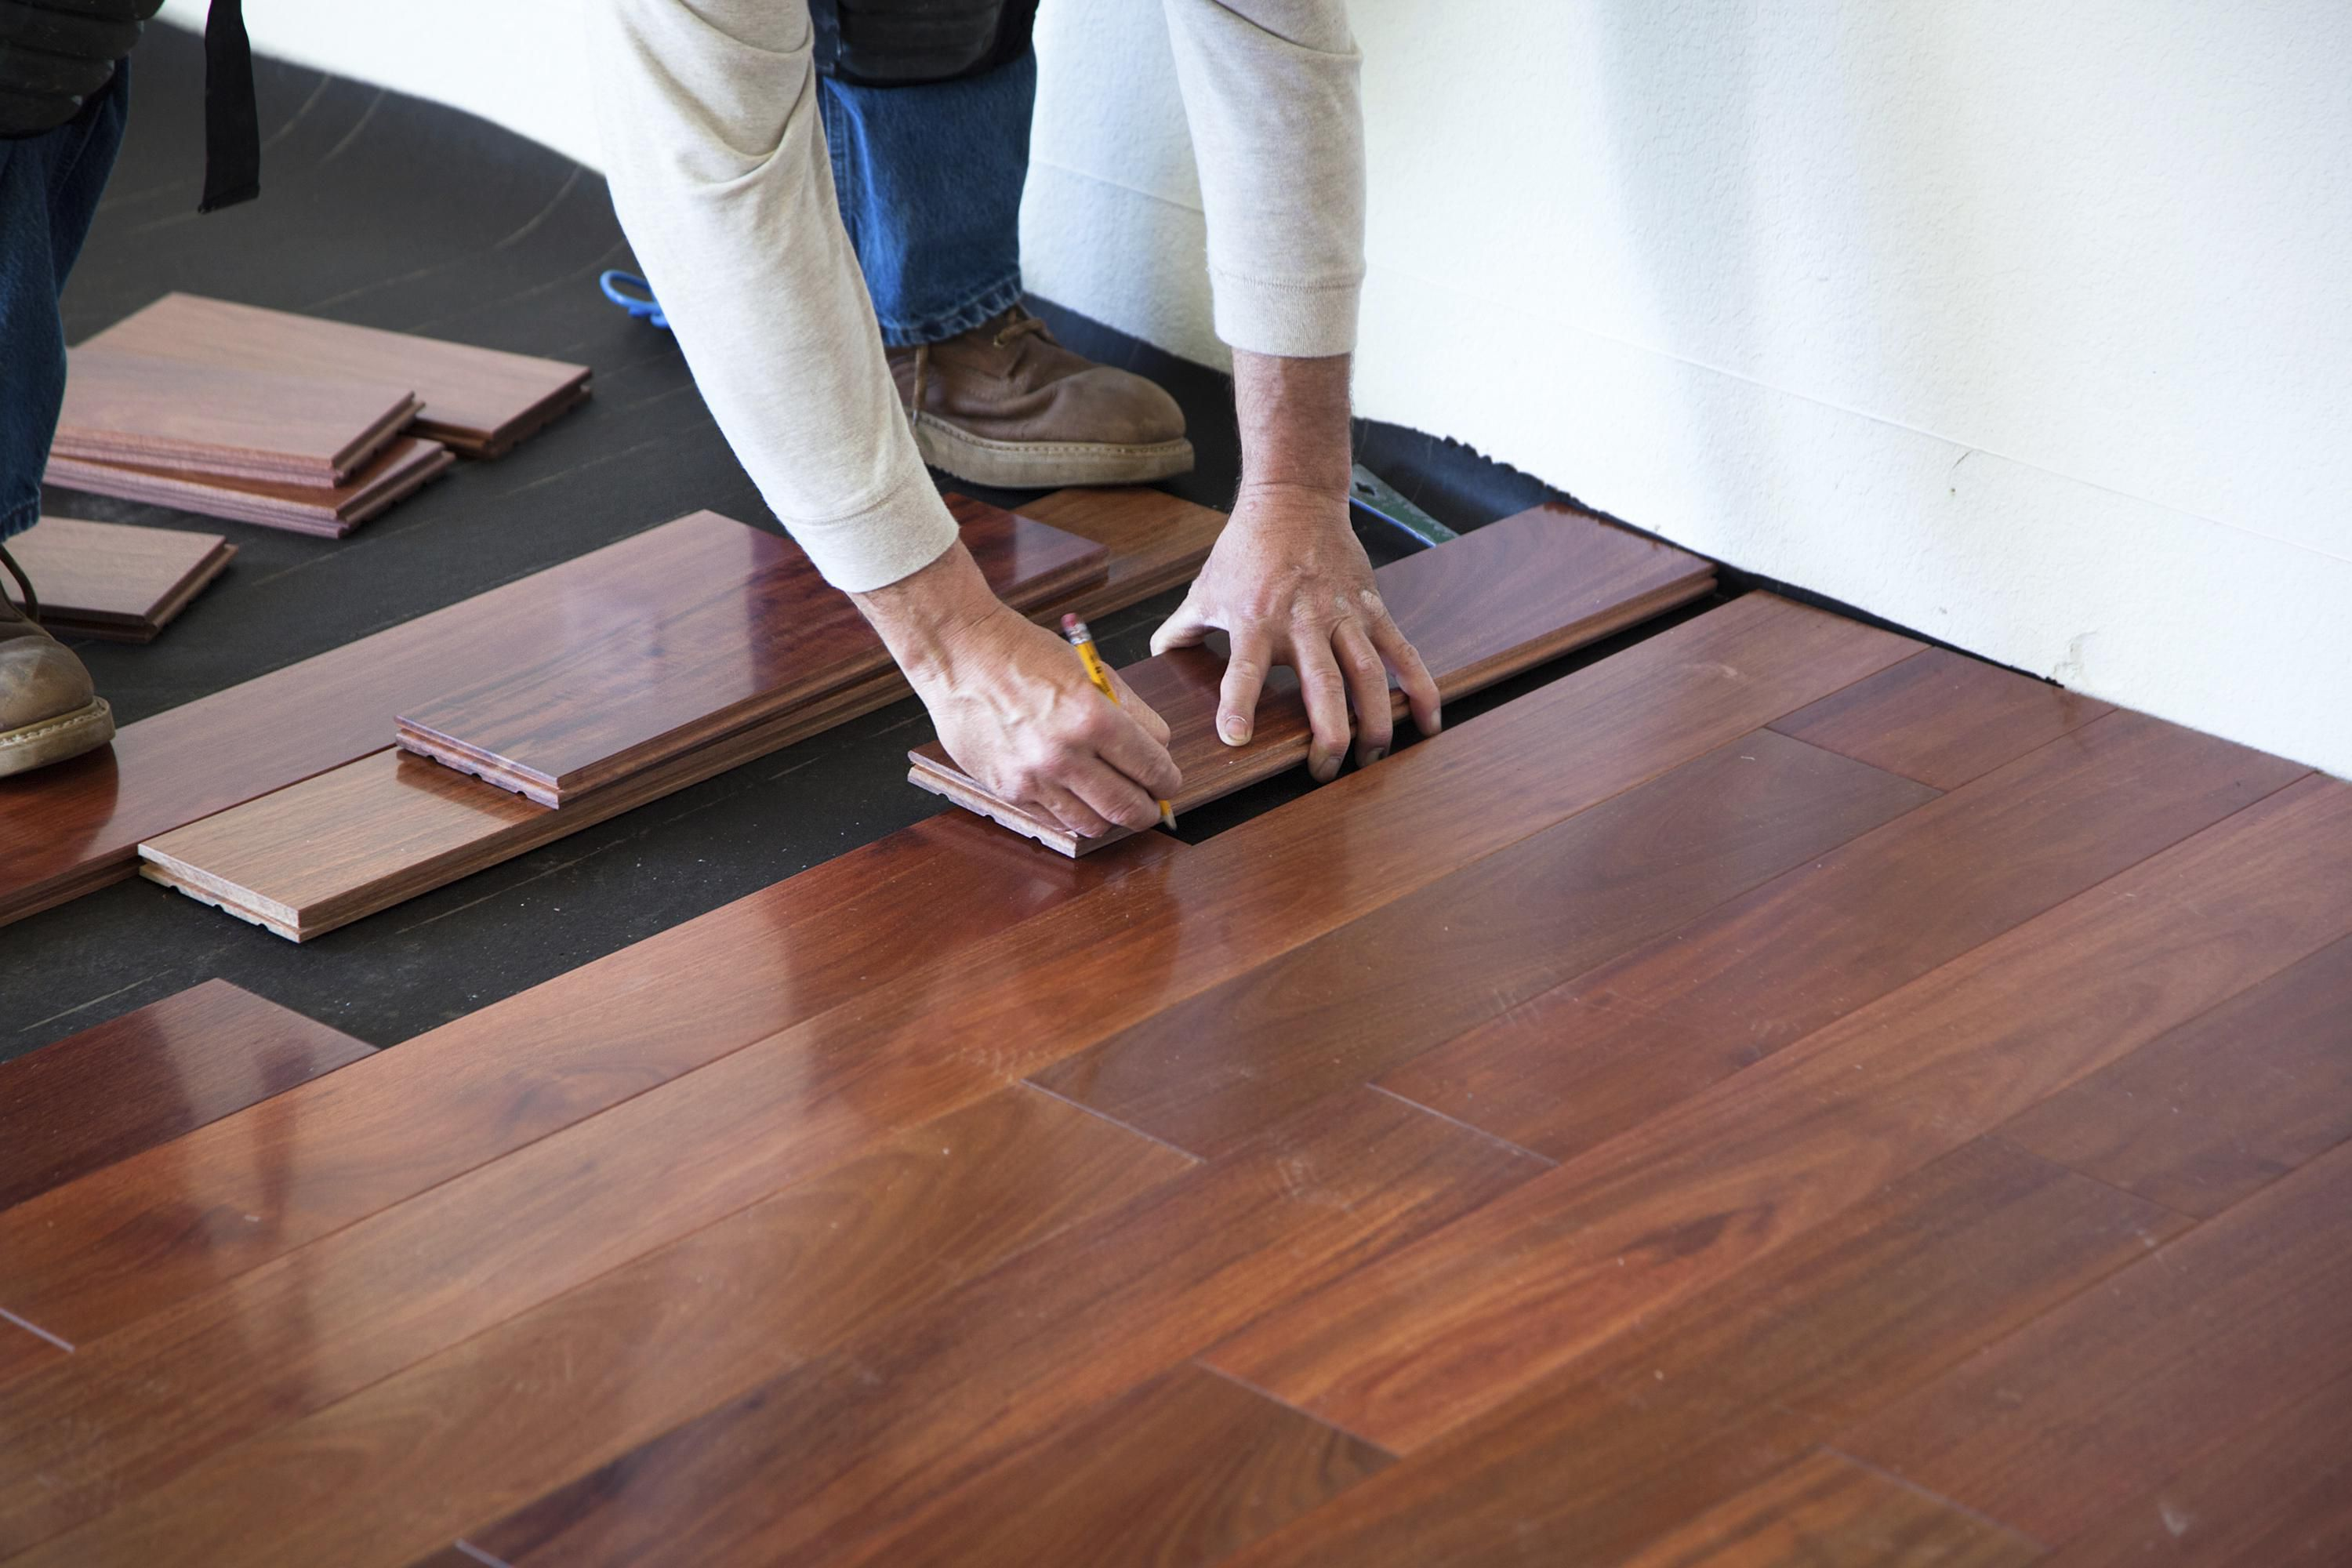 floors marchs on s social march floor star brazilian blog flooring morning siegel koa top red